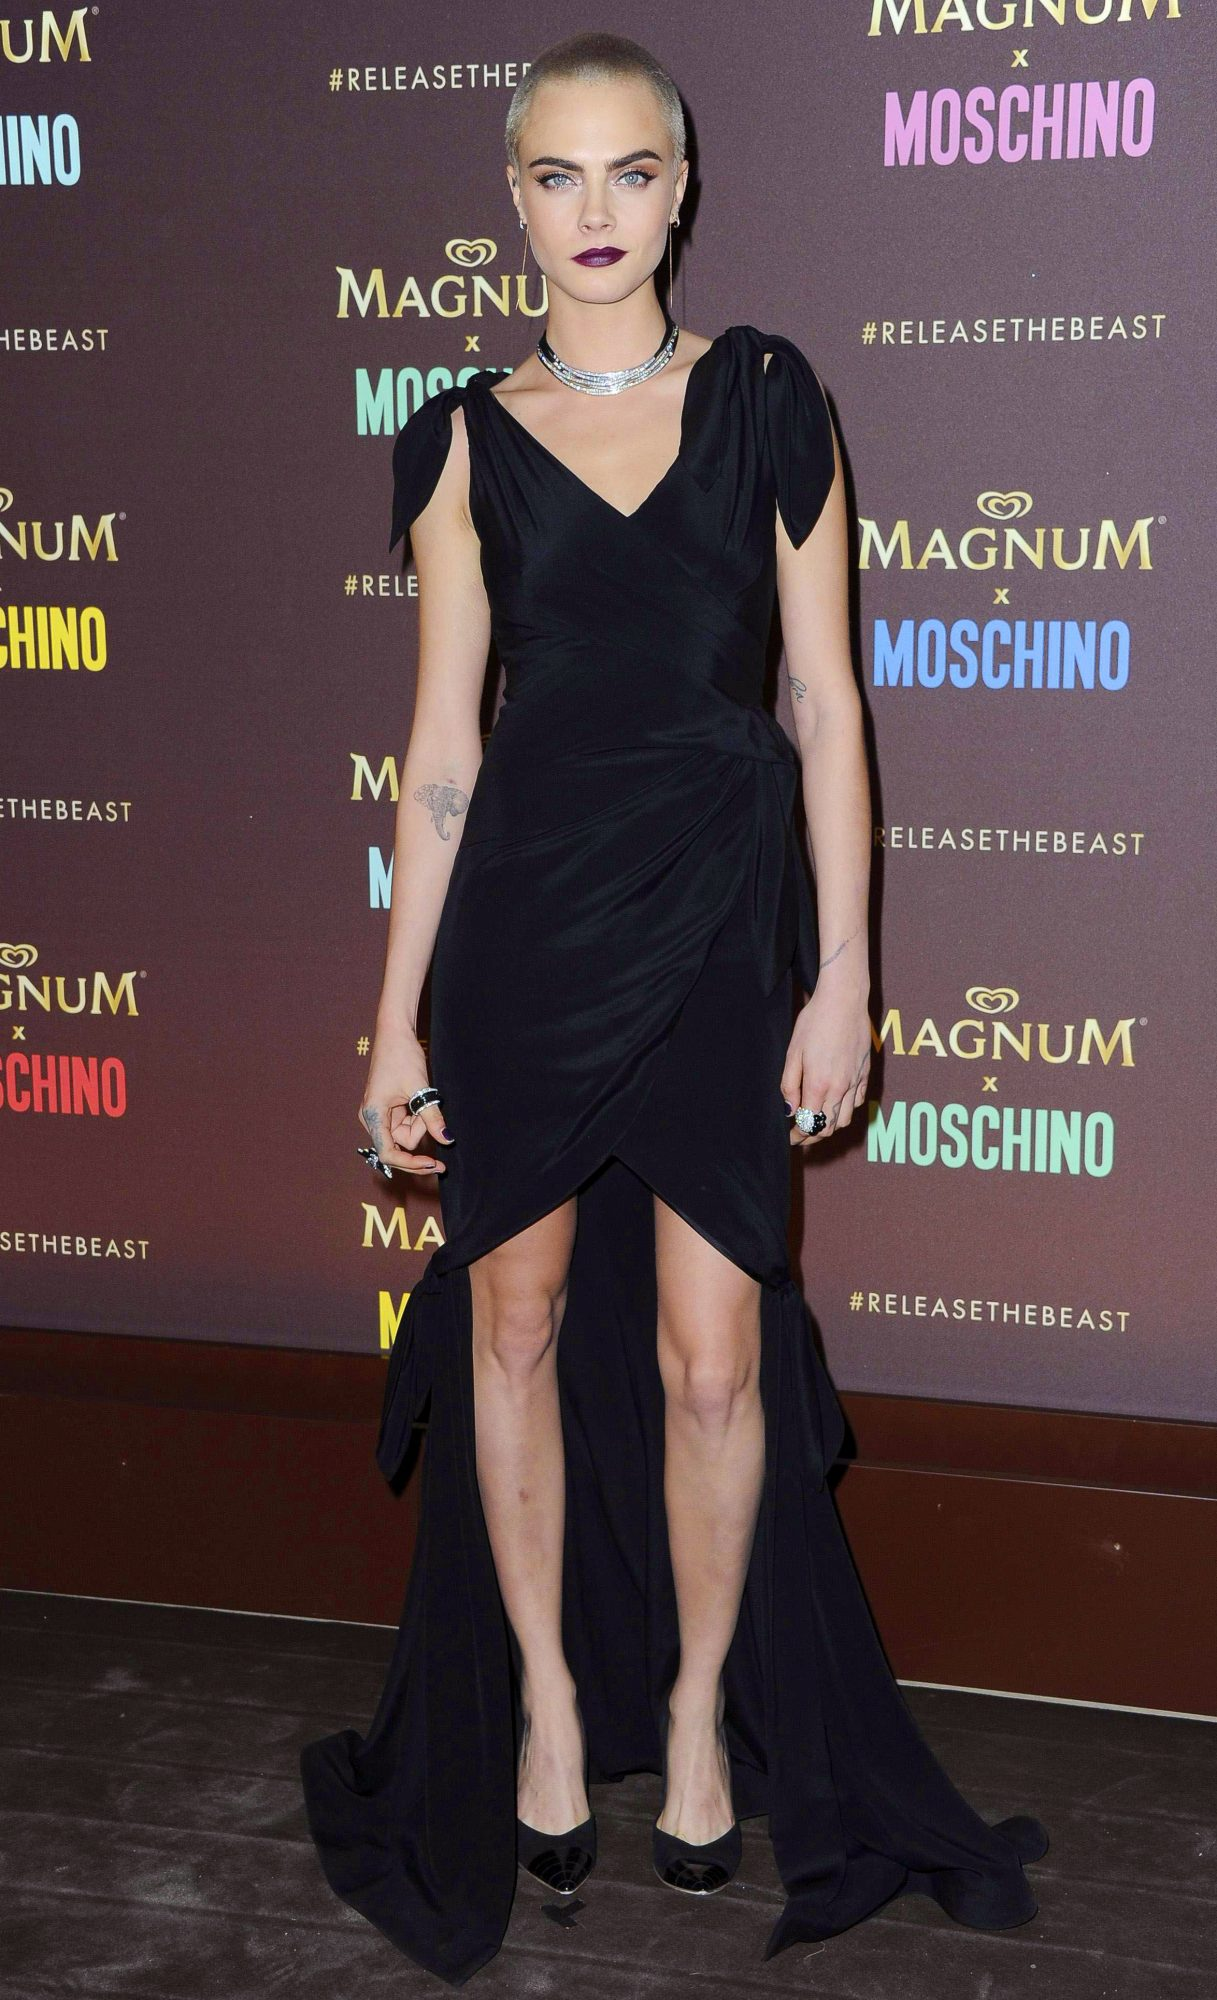 Magnum x Moschino party, 70th Cannes Film Festival, France - 18 May 2017